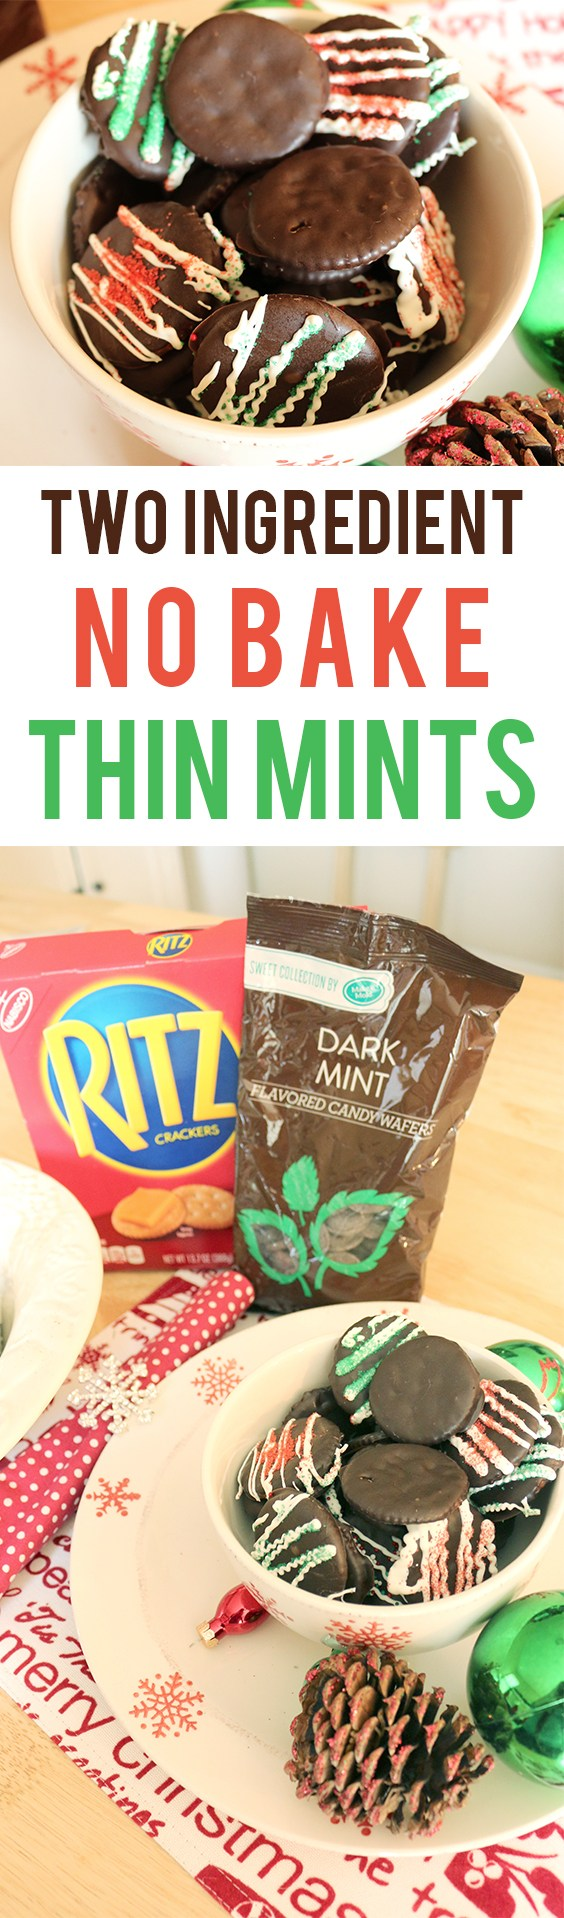 how to make thin mint cookies with ritz crackers